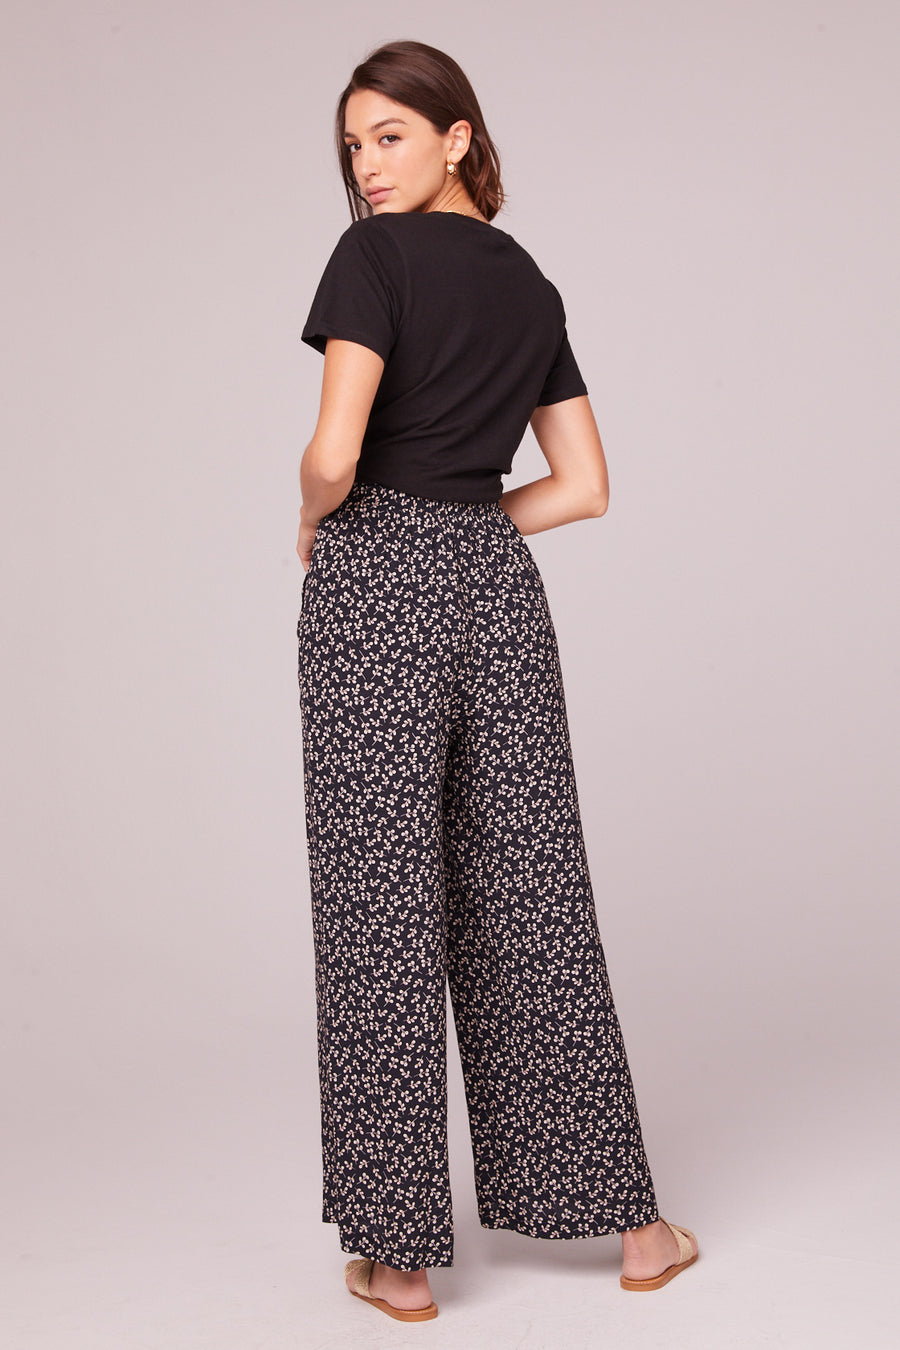 Eve Black Floral Wide Leg Pants Master